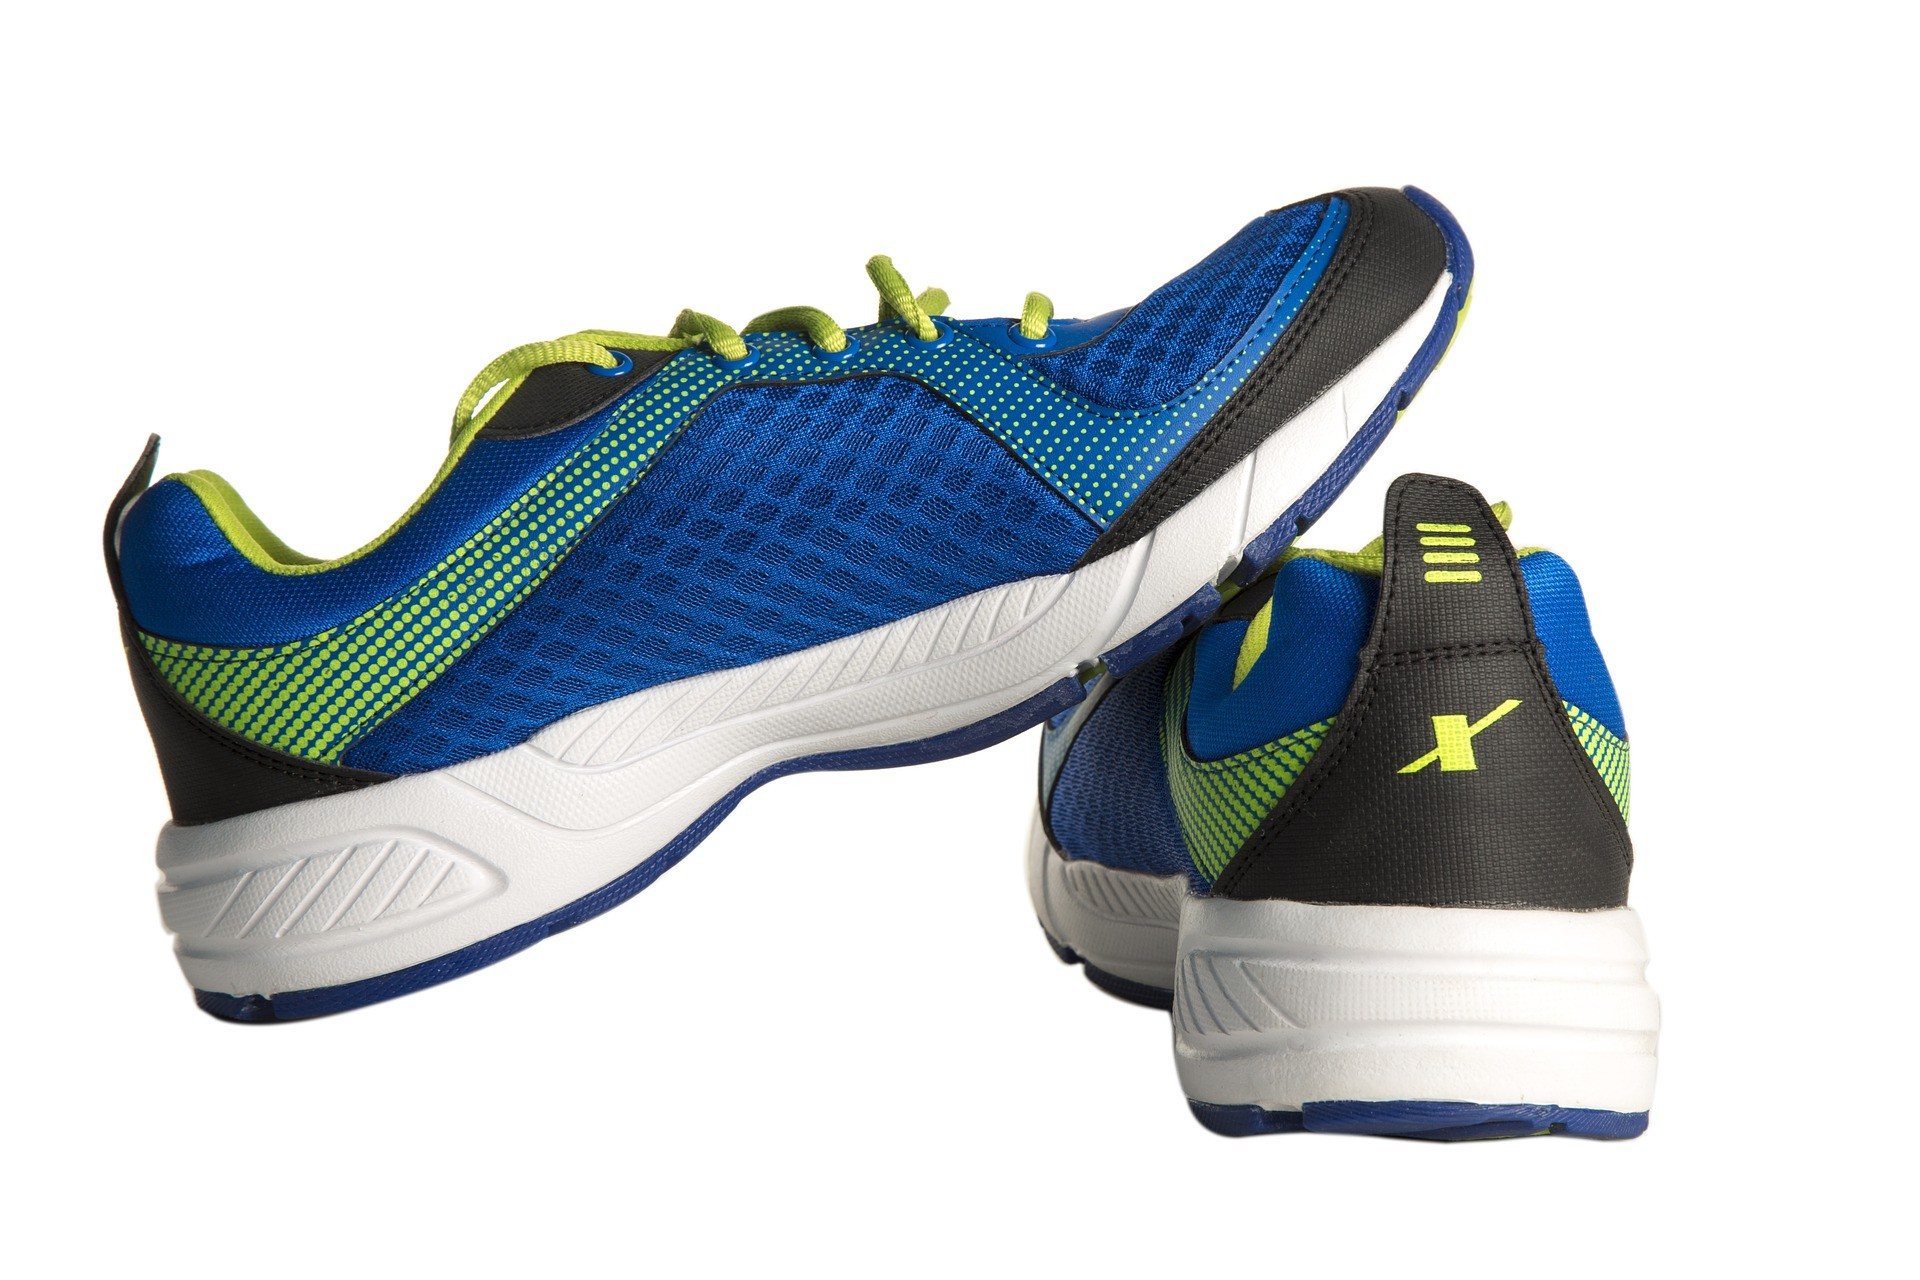 Best Jogging Shoes For Overweight